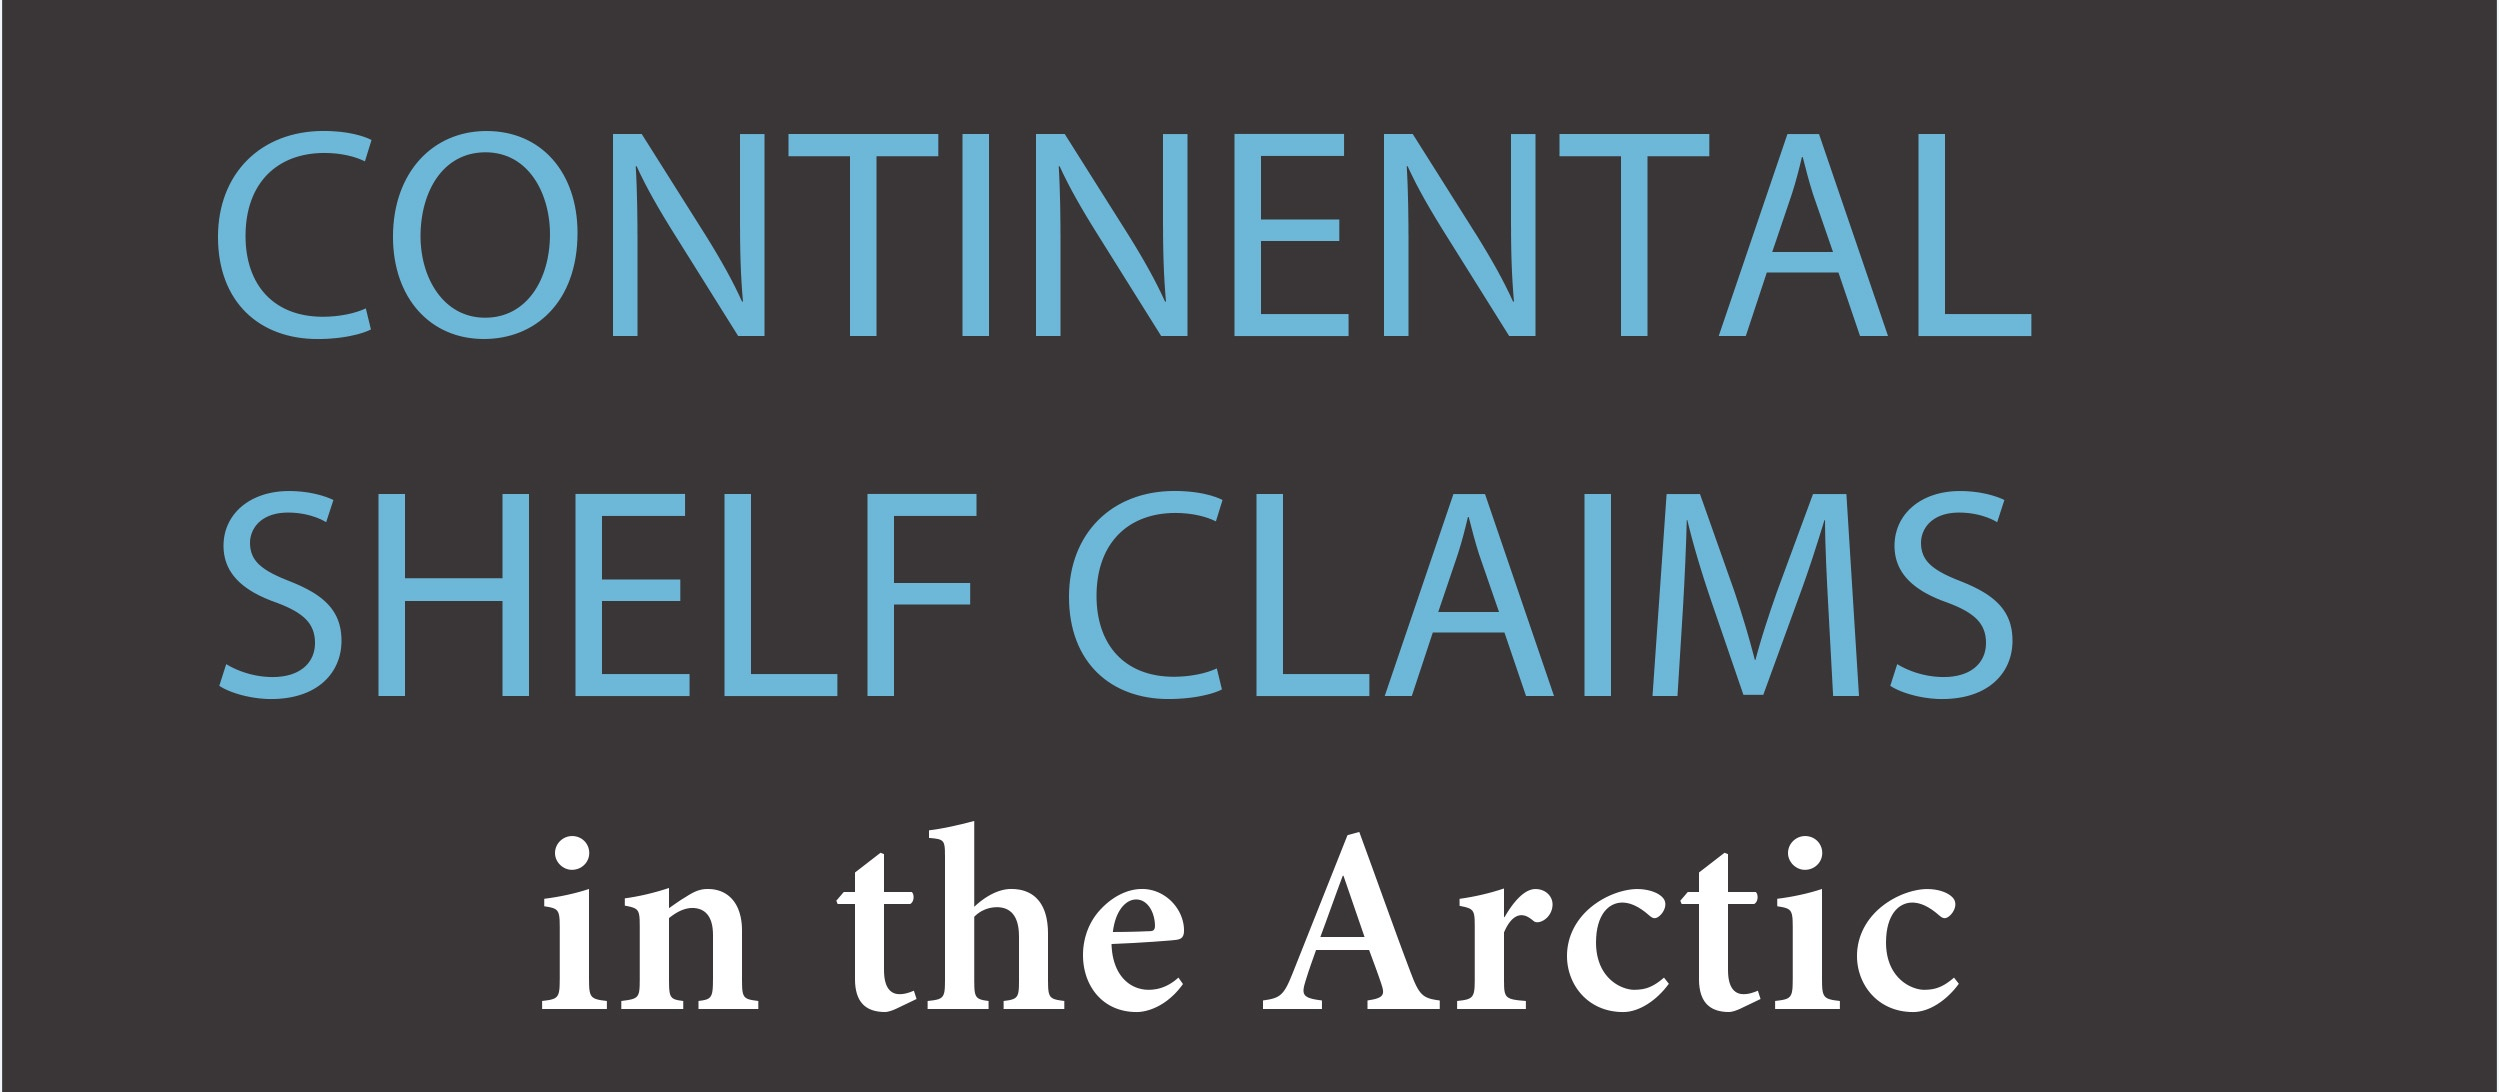 Continental_shelf_claims_Arctic_infographic